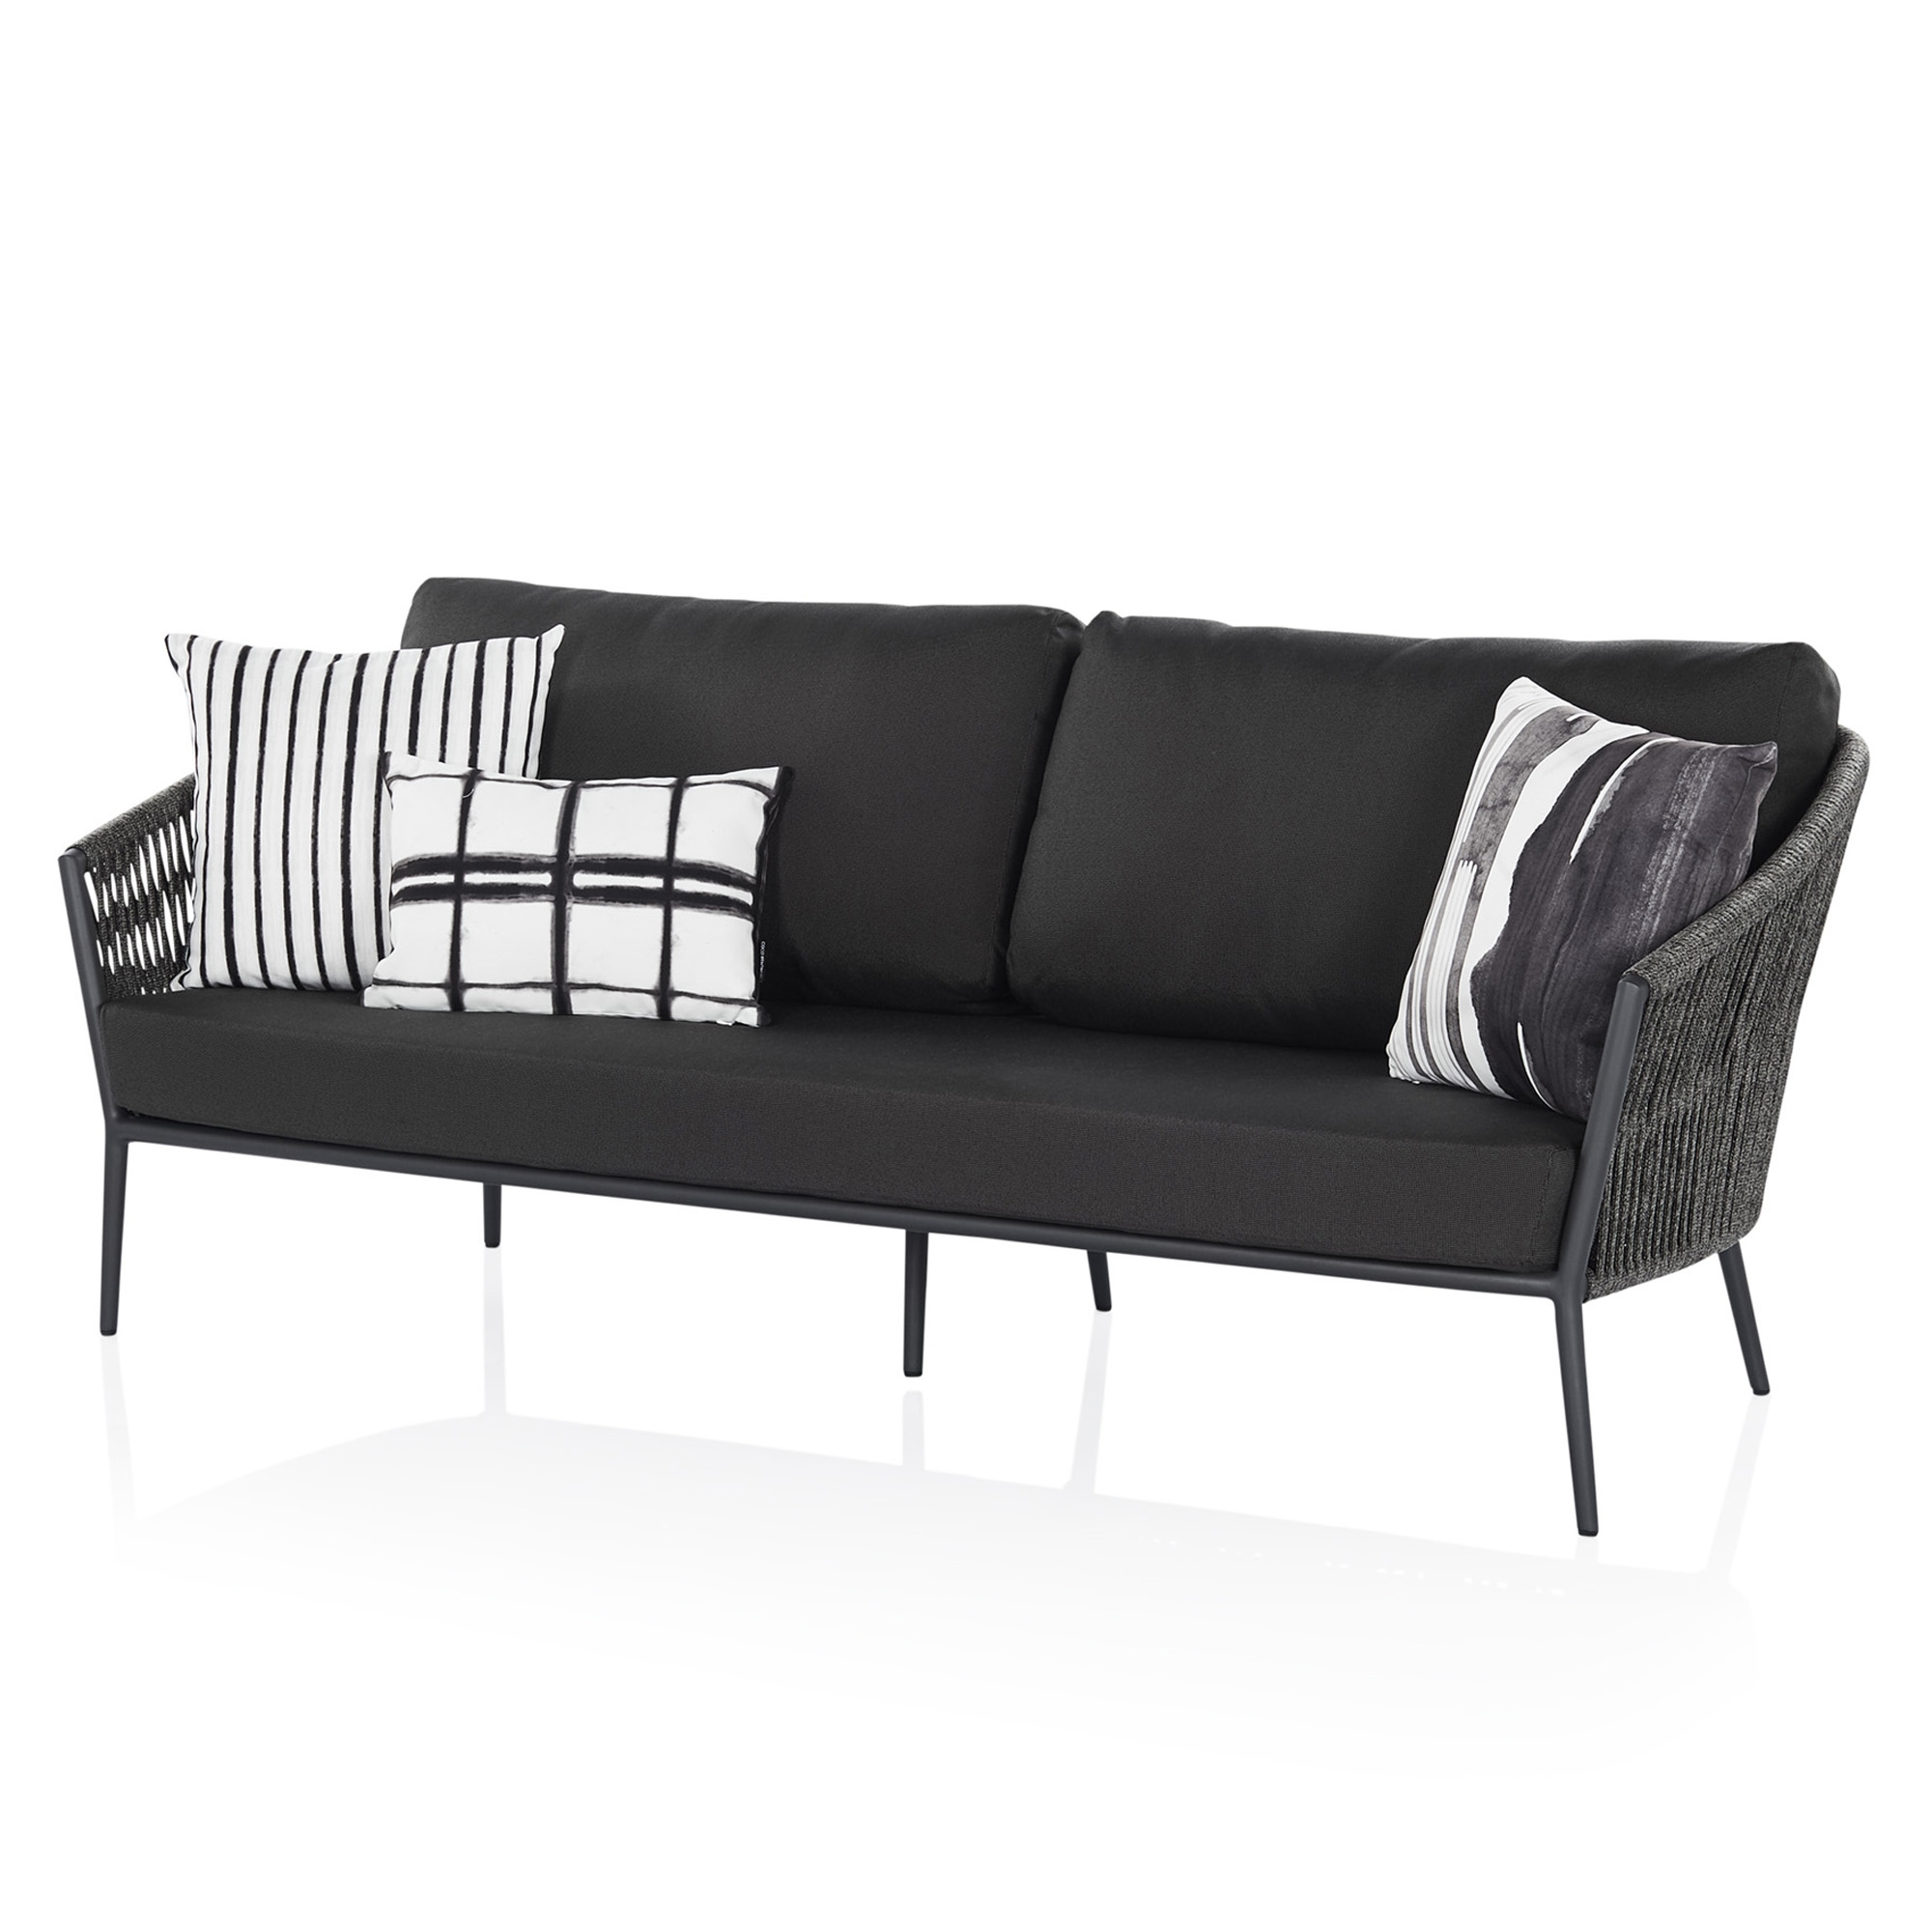 Catalina Outdoor Sofas With Cushions Throughout Famous Catalina Outdoor Sofa (View 5 of 11)